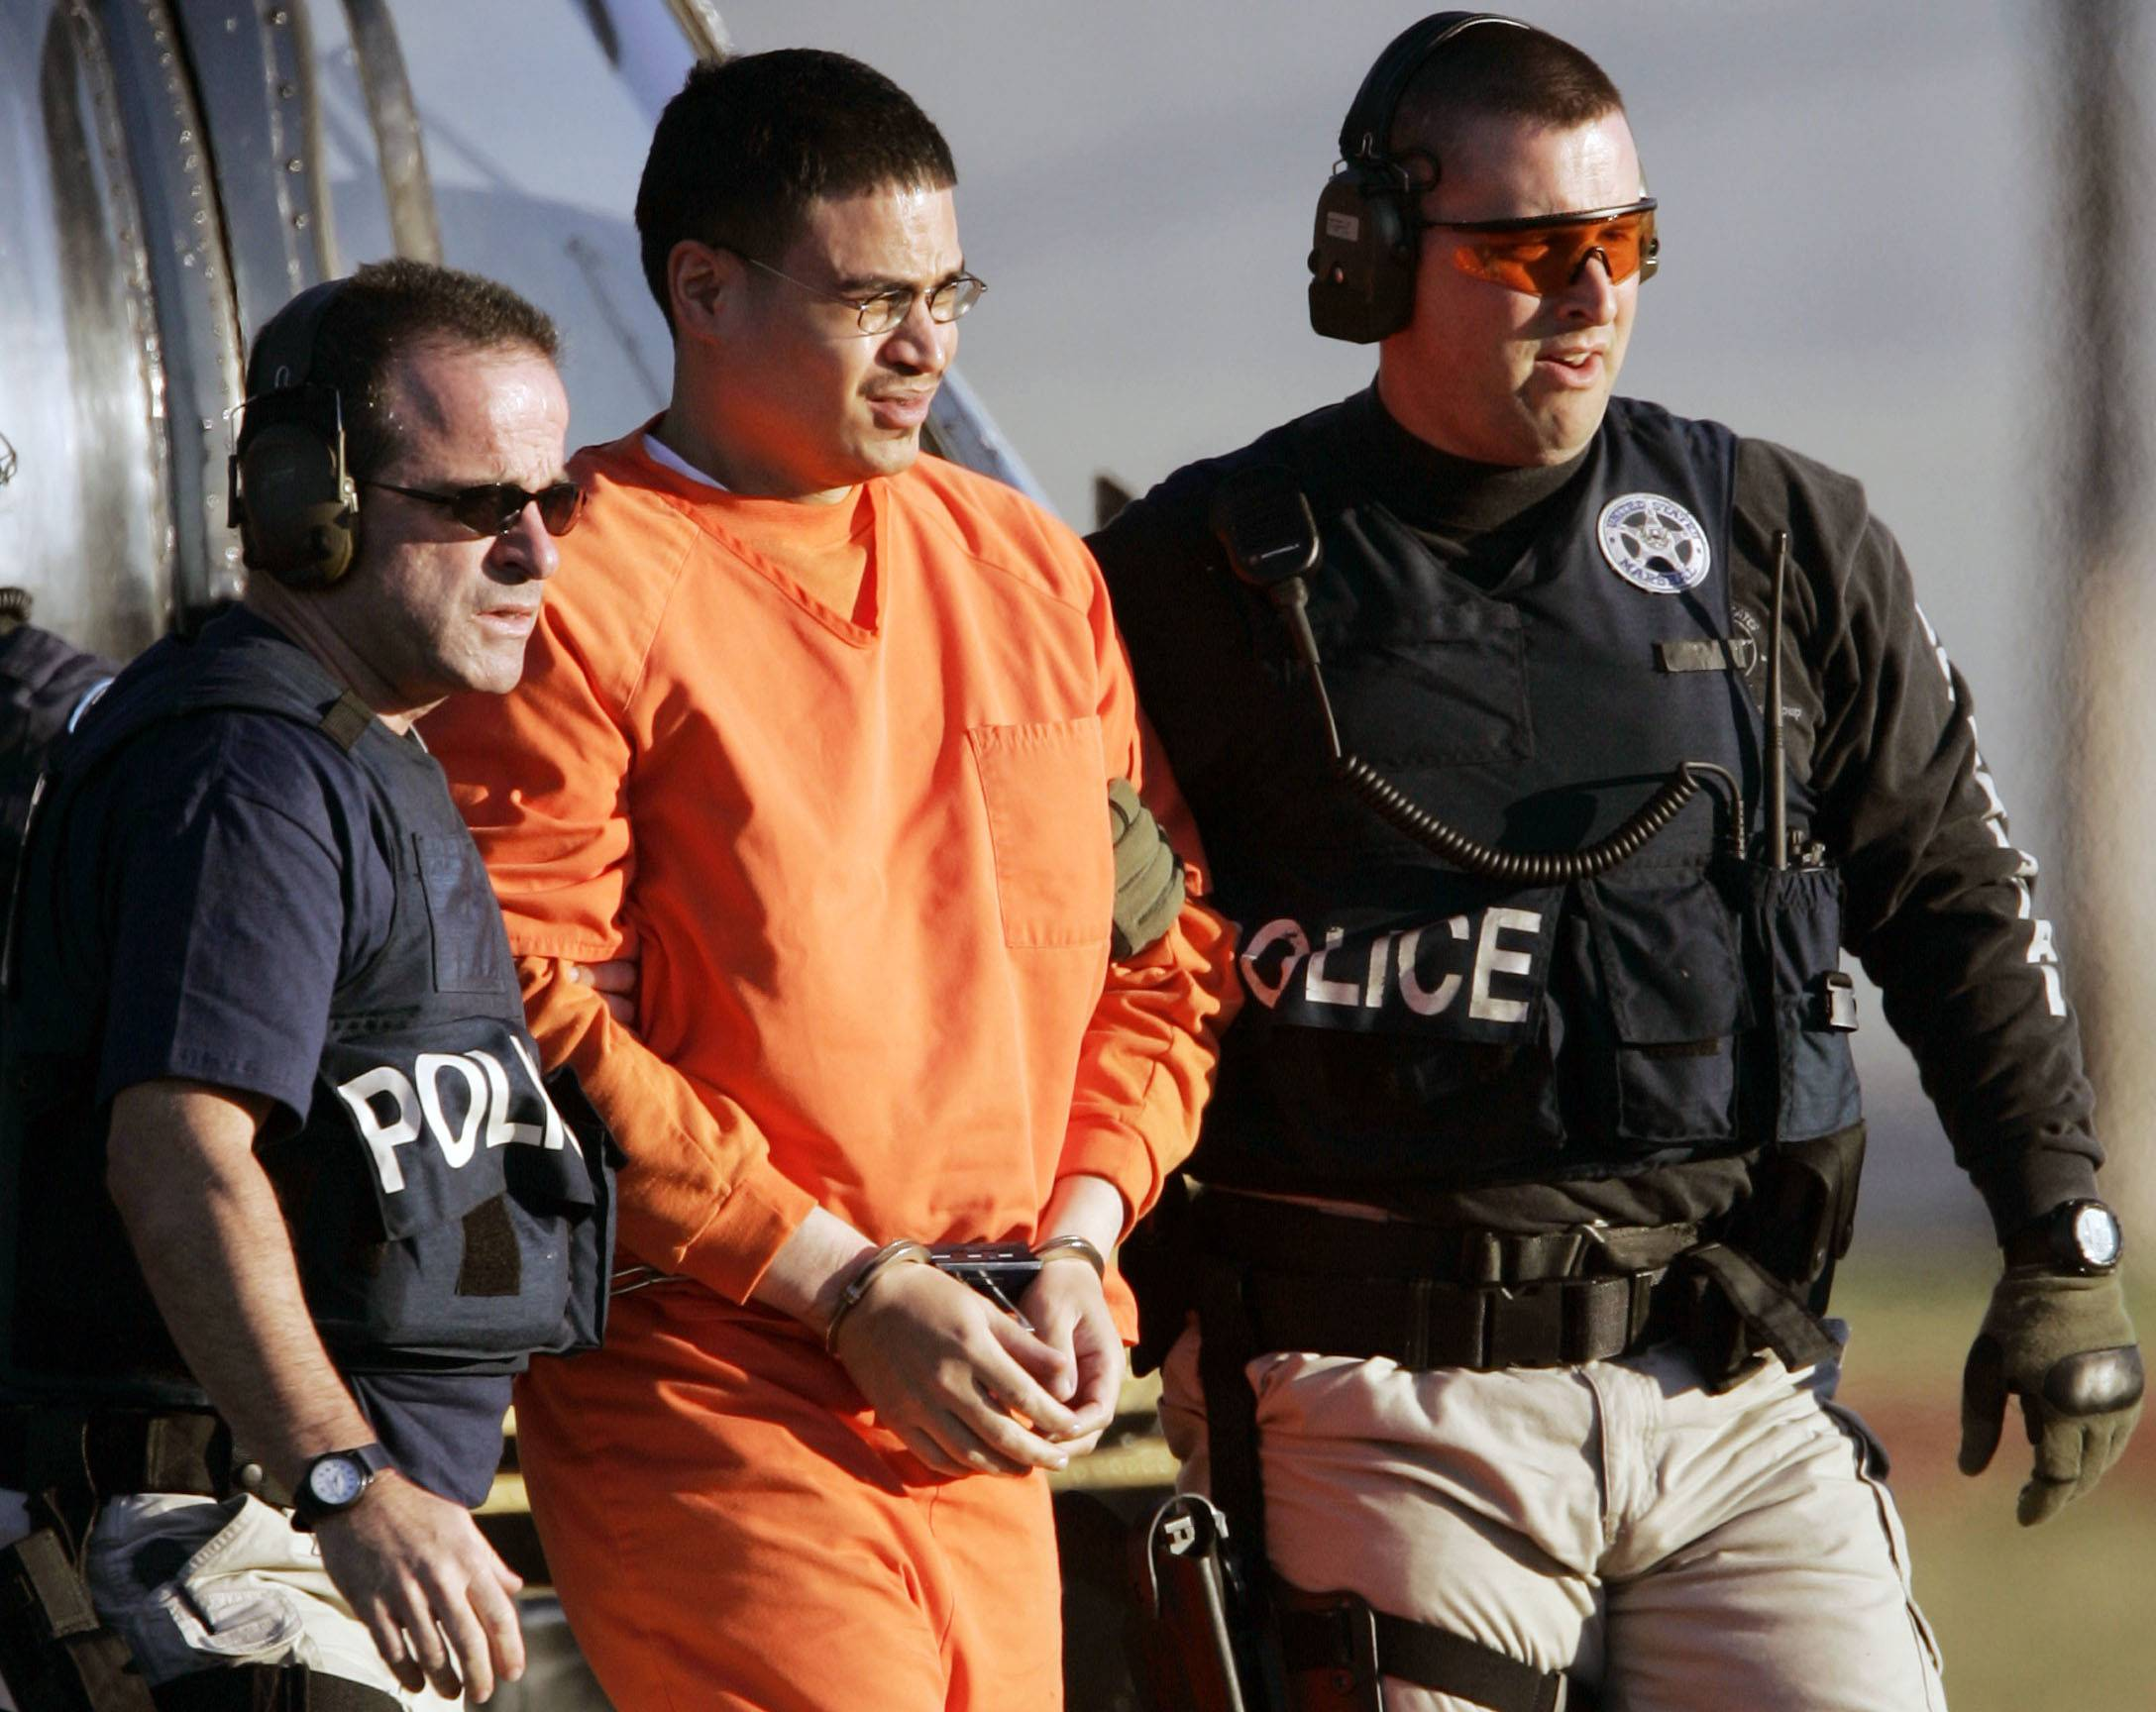 In this Jan. 5, 2006, file photo, Jose Padilla, center, is escorted by federal marshals on his arrival in Miami. Miami U.S. District Judge Marcia Cooke scheduled a Wednesday afternoon Feb. 12 hearing for Padilla. He originally was sentenced to 17 years of prison for terrorism support and conspiracy convictions. A federal appeals court ruled in 2011 that the sentence was too lenient, given Padilla's lengthy criminal record and terrorist training at an al-Qaida camp in Afghanistan.